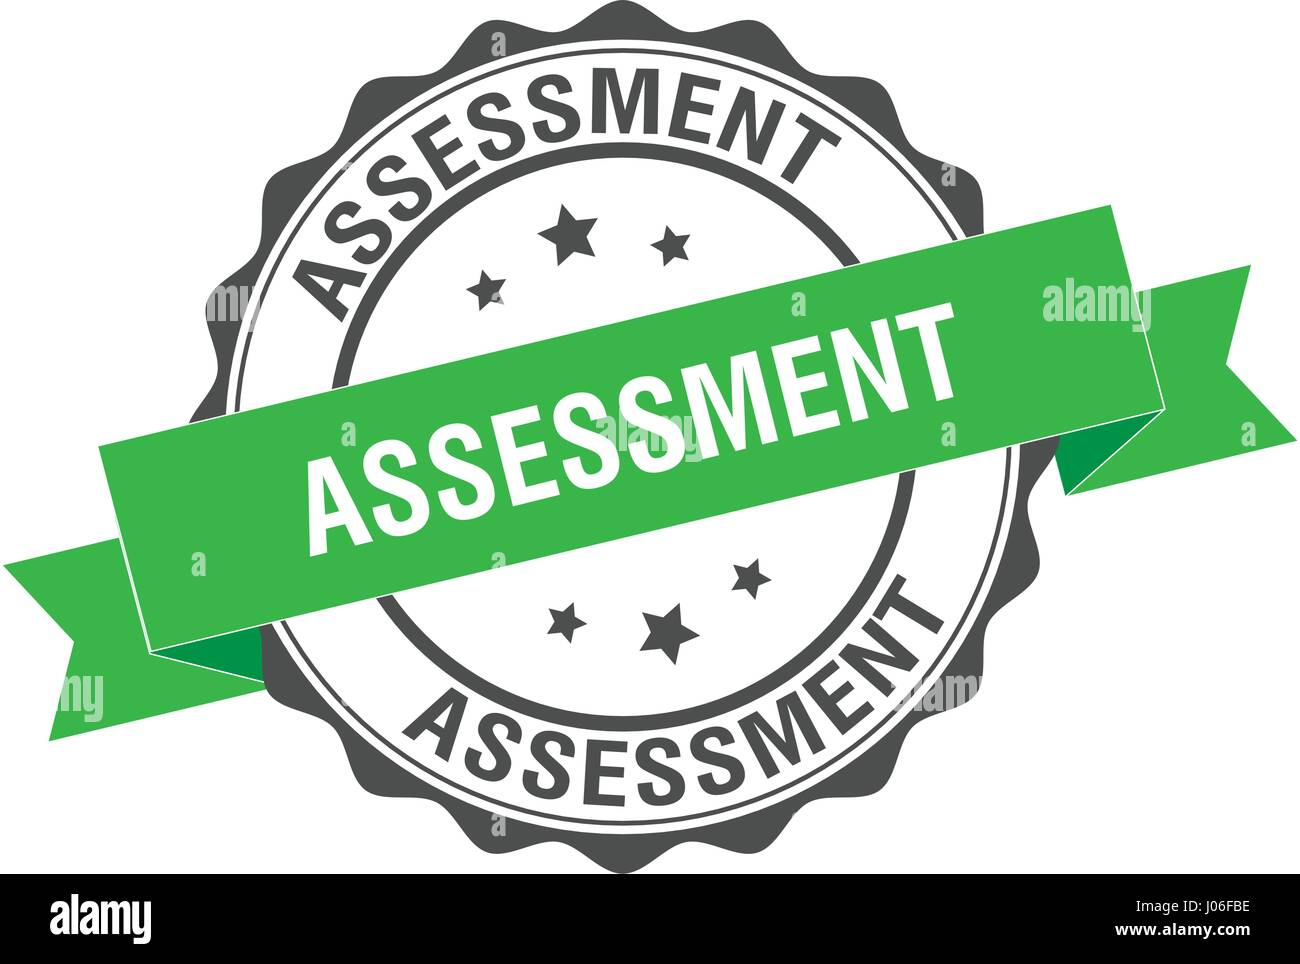 Assessment Vector Vectors High Resolution Stock Photography And Images Alamy Download free images about assessment from illuetac's library of over 950,000 free vectors, cliparts and illustrations. https www alamy com stock photo assessment stamp illustration 137826738 html